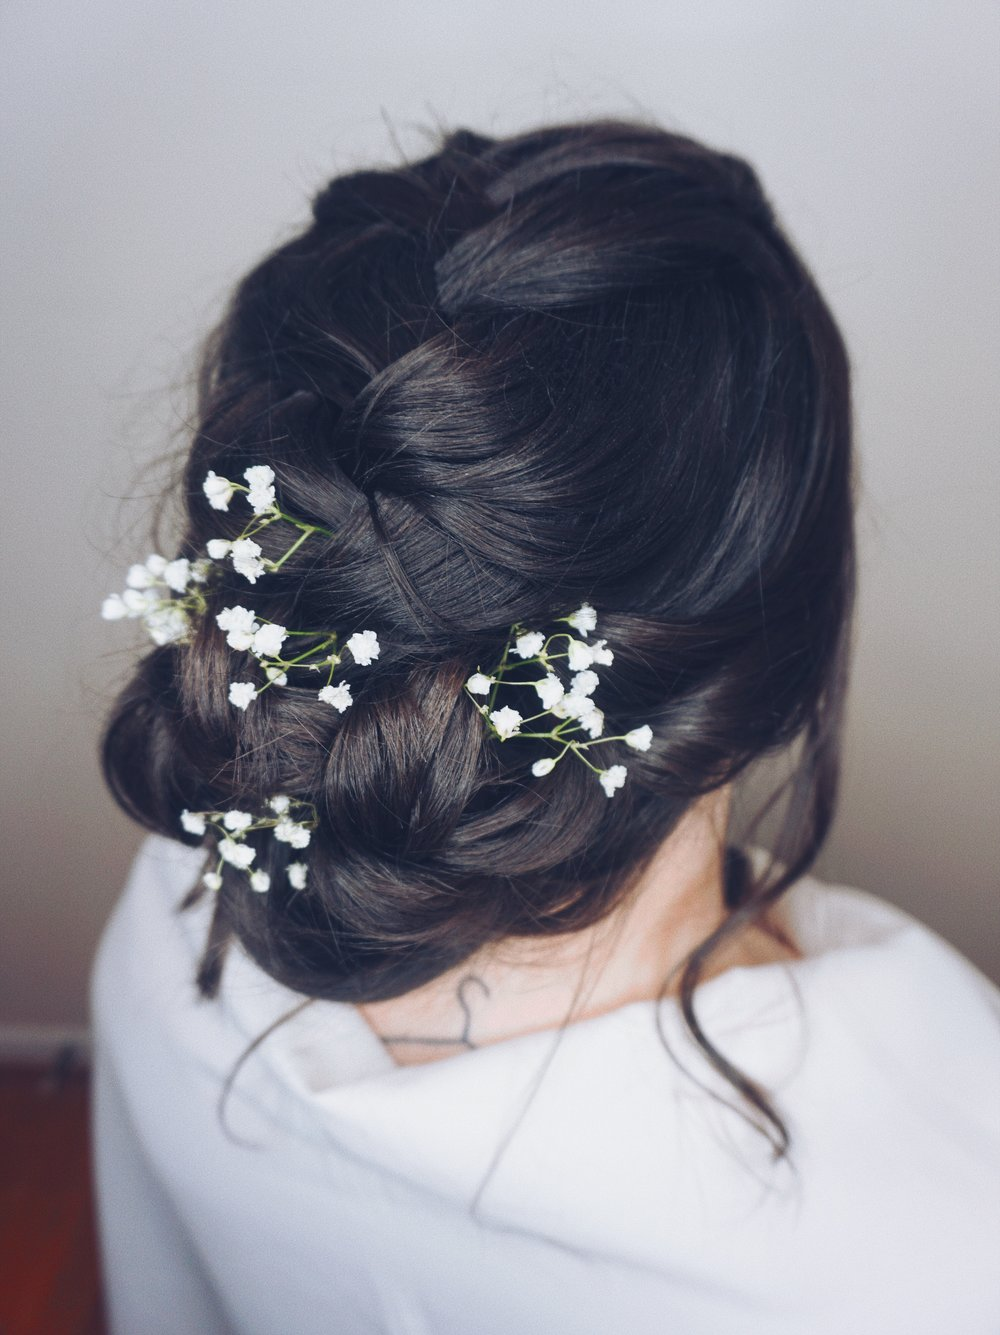 Romantic textured low bun with braids & florals